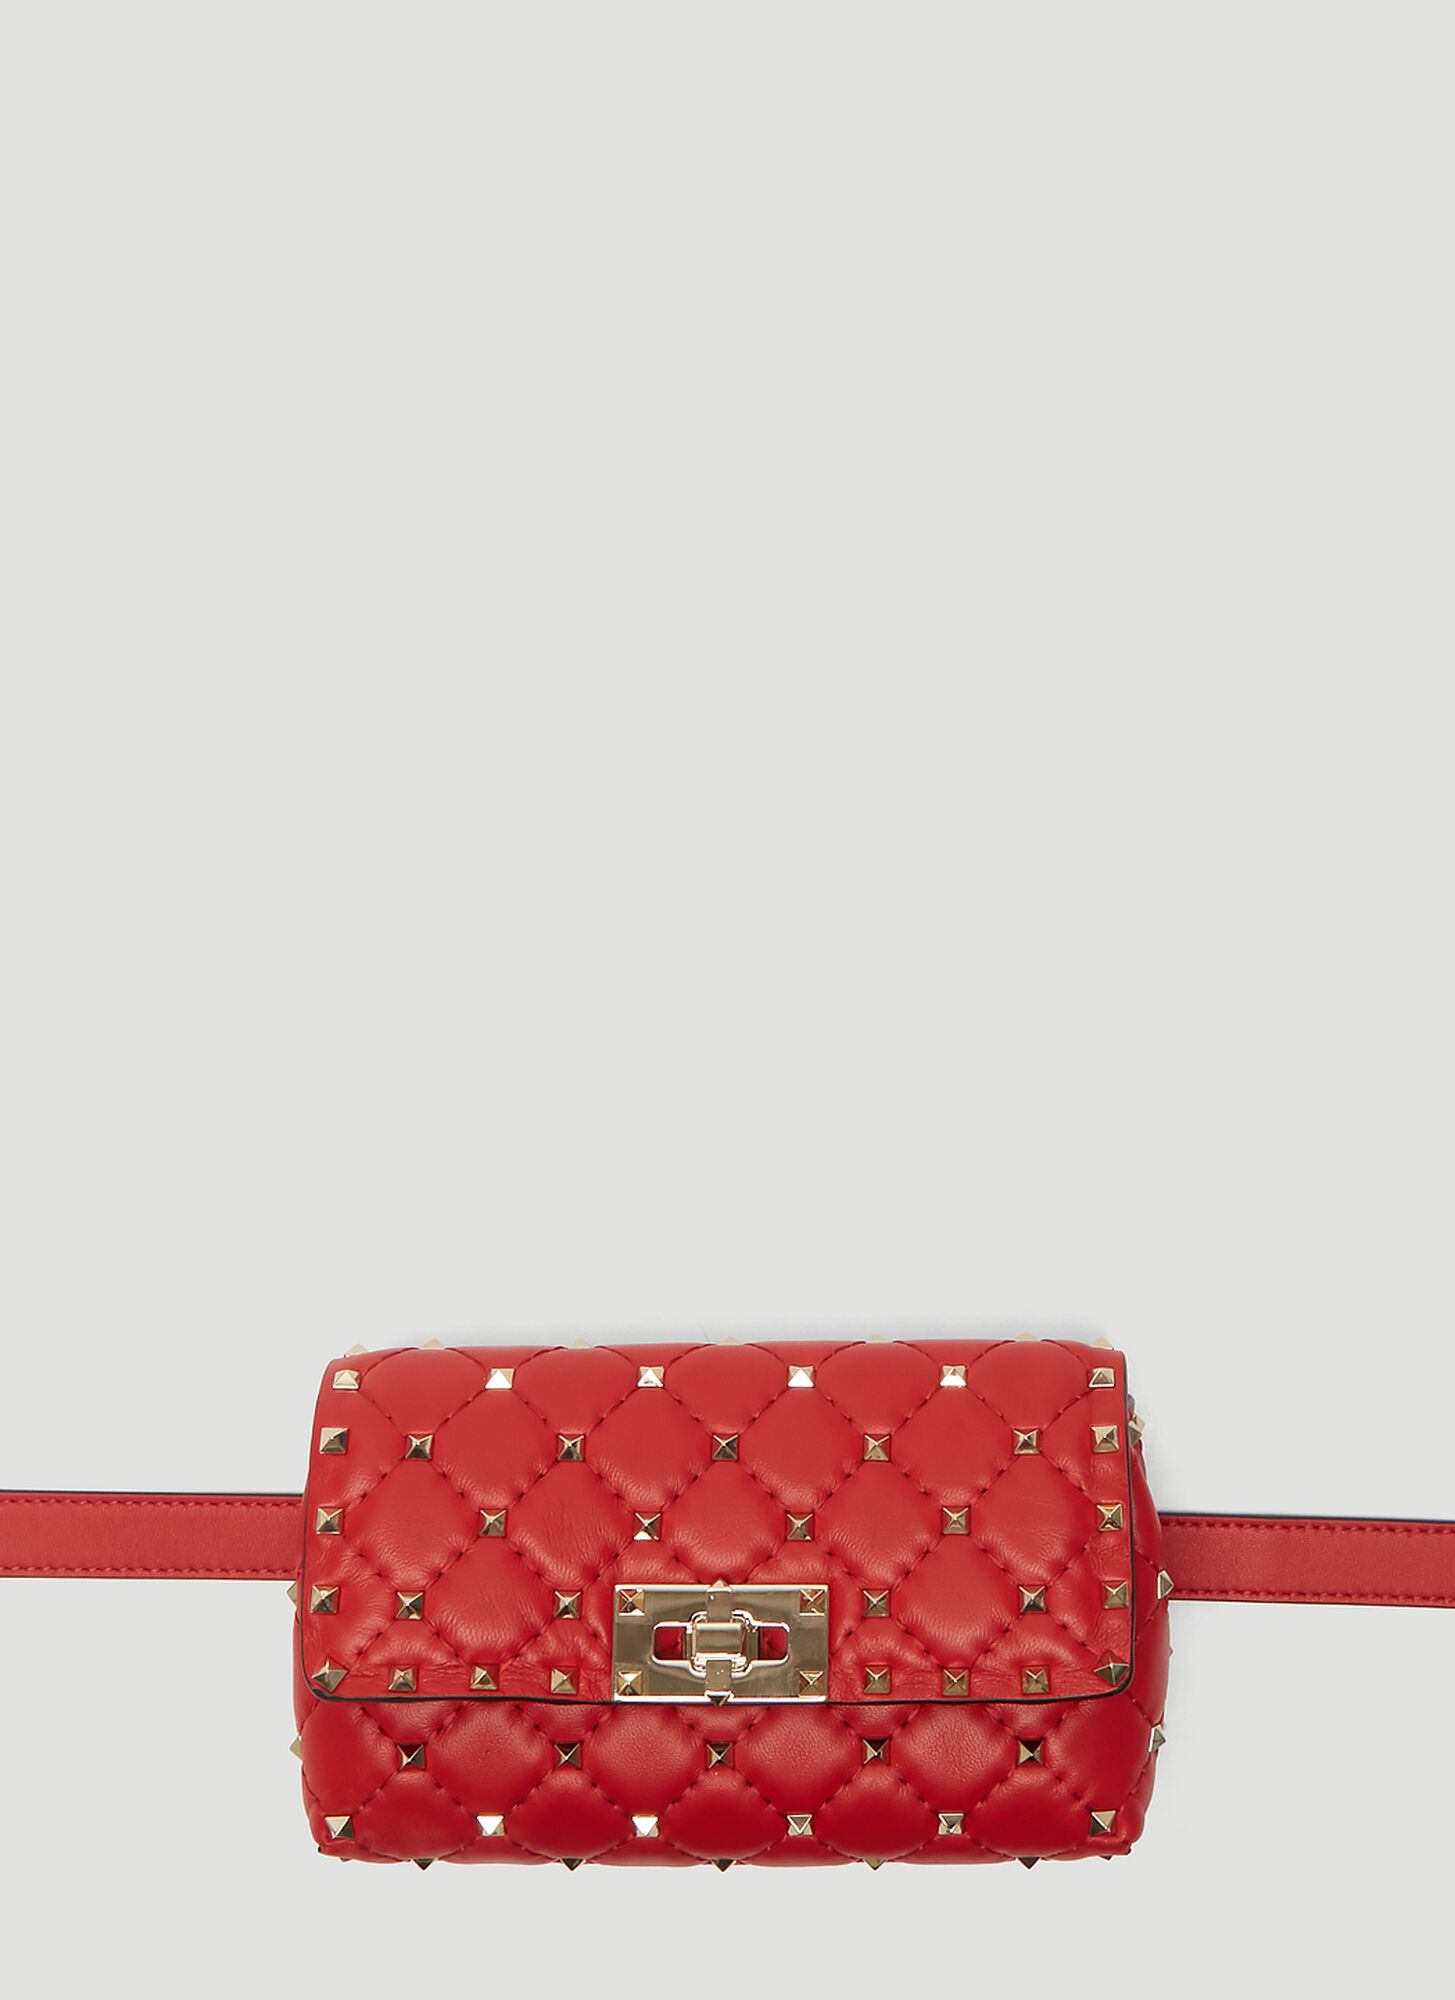 Valentino Rockstud Leather Belt Bag in Red